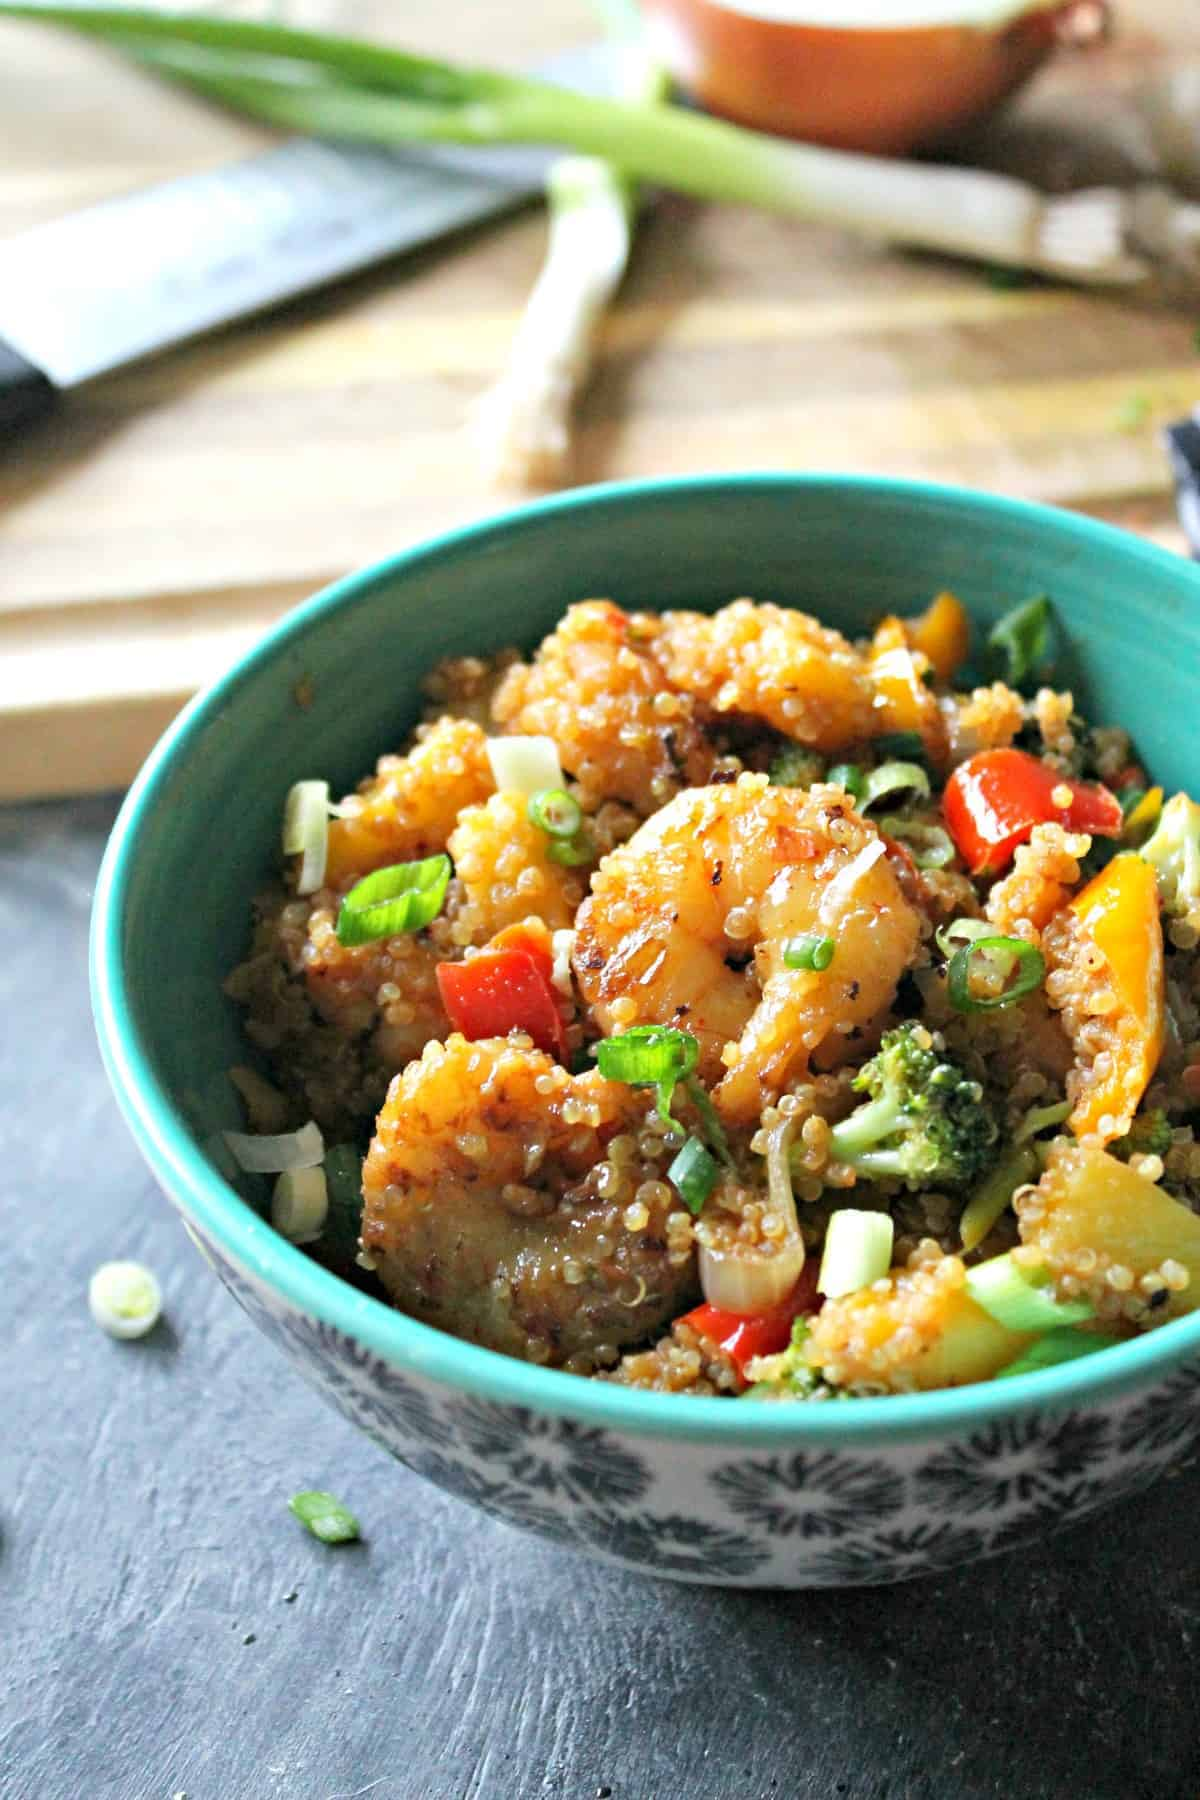 Sweet Pineapple Shrimp and Quinoa Stir Fry bowls with sweet peppers